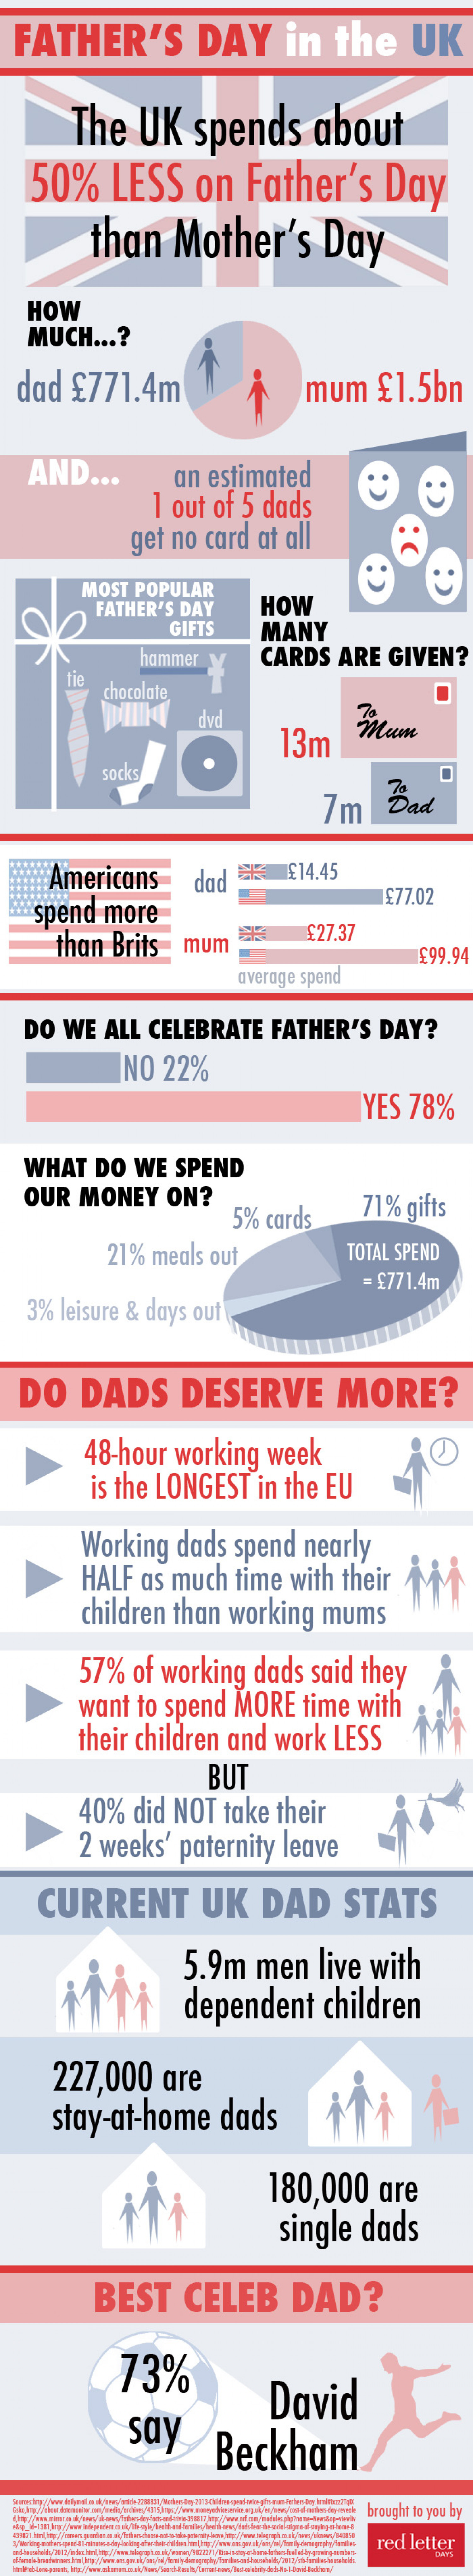 Father's Day in the UK Infographic